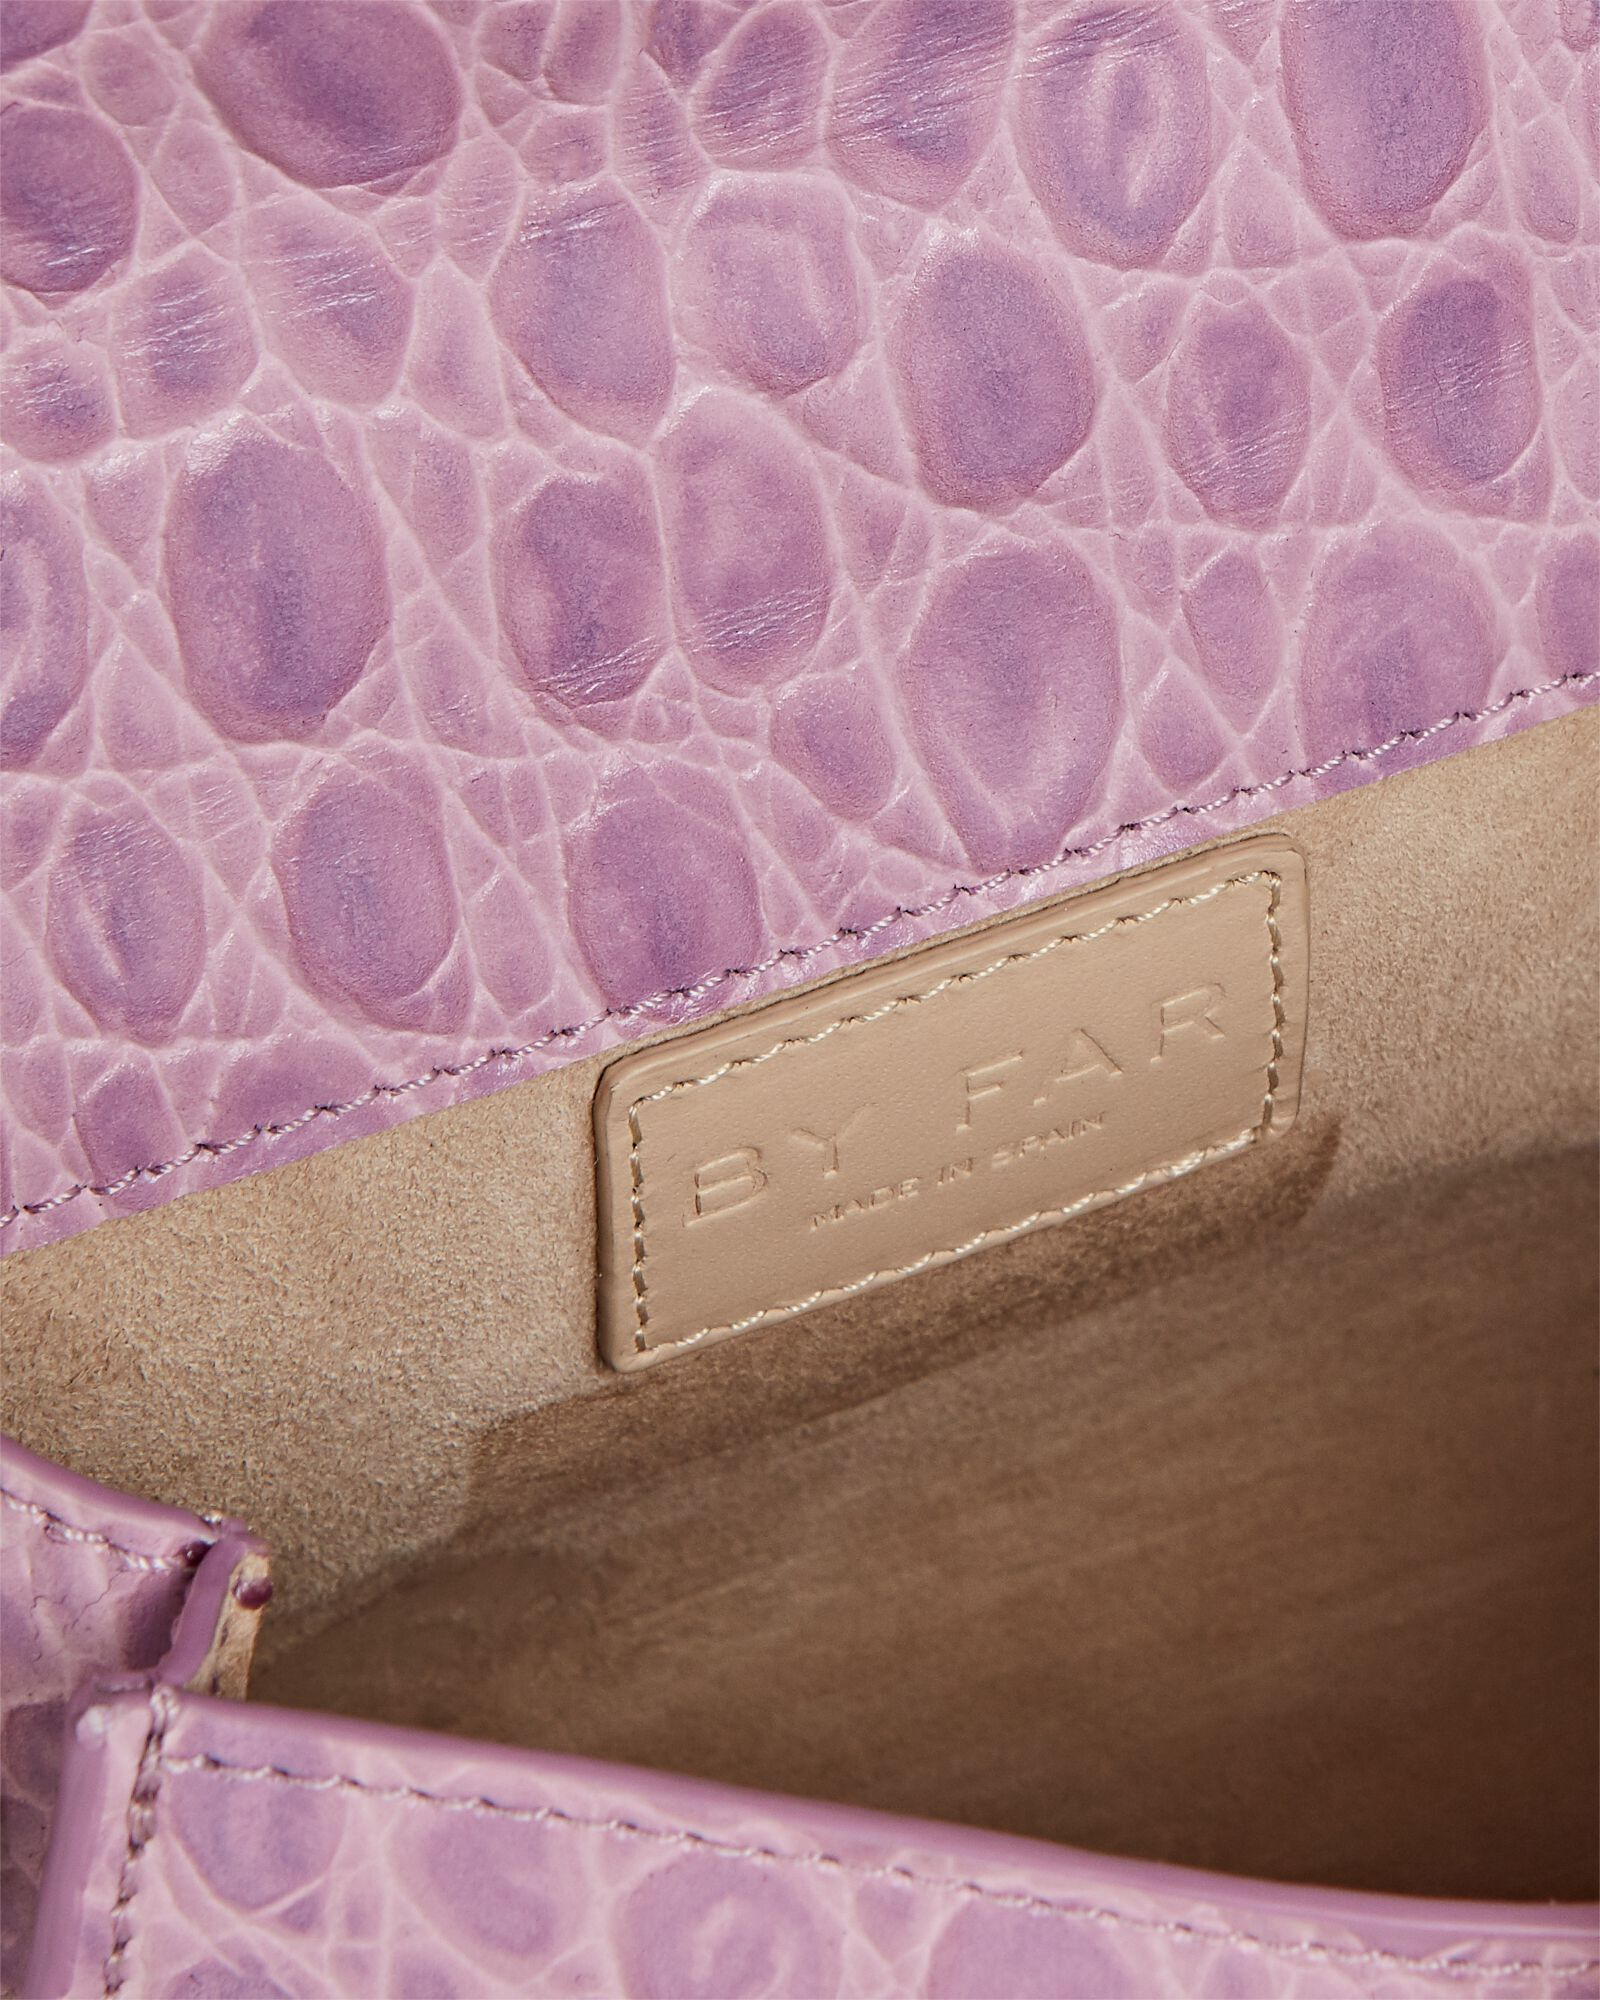 Mini Croc-Embossed Leather Bag, PURPLE-LT, hi-res